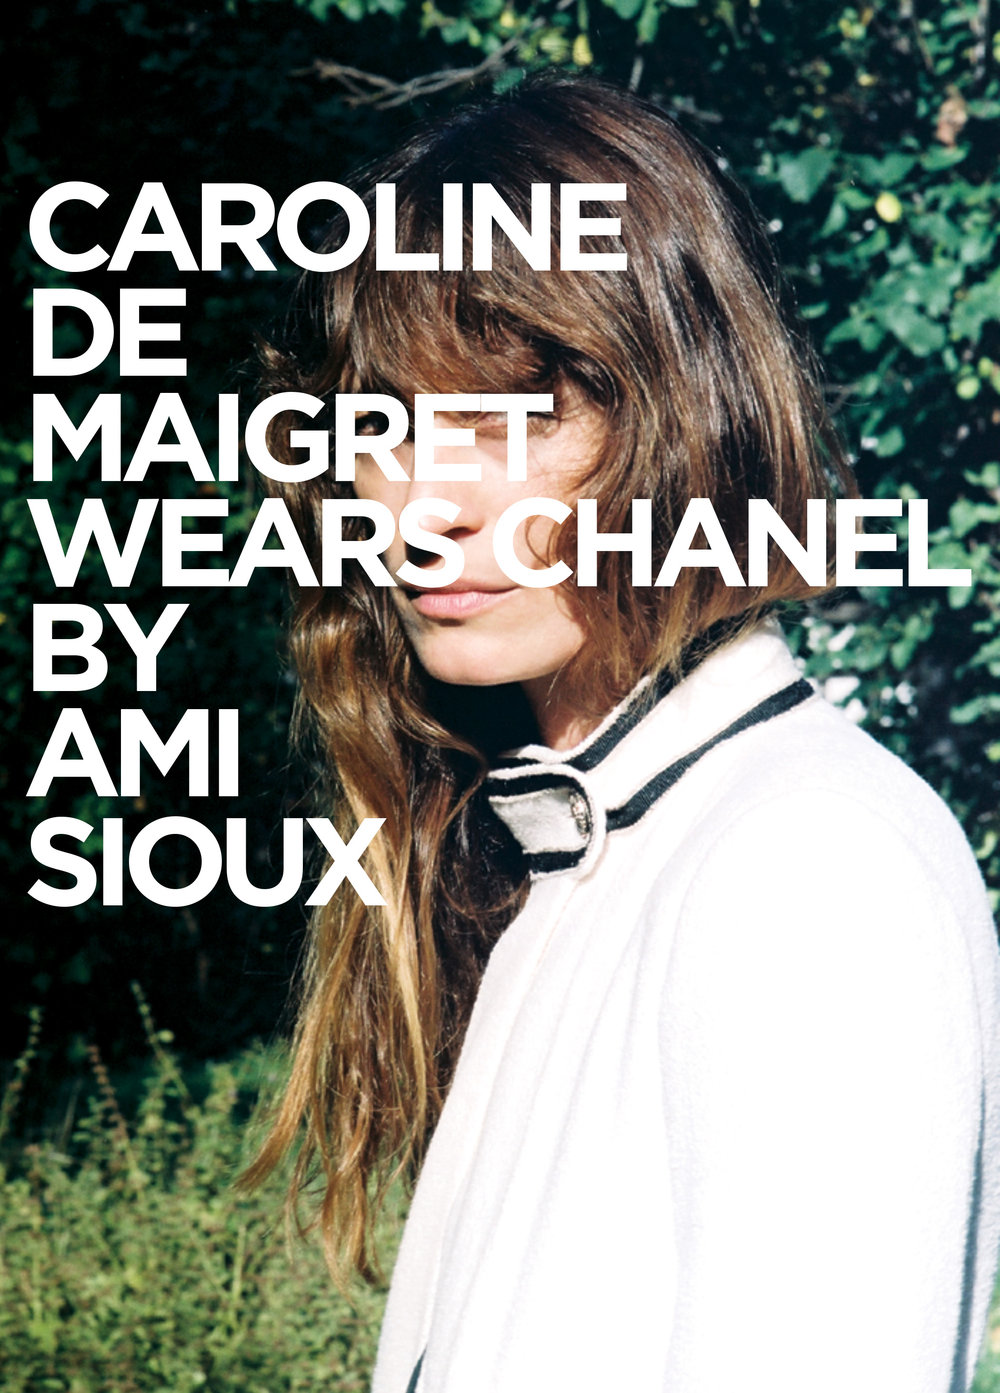 ZINE_02_AMI-SIOUX__FORCHANEL (dragged) 3.jpg